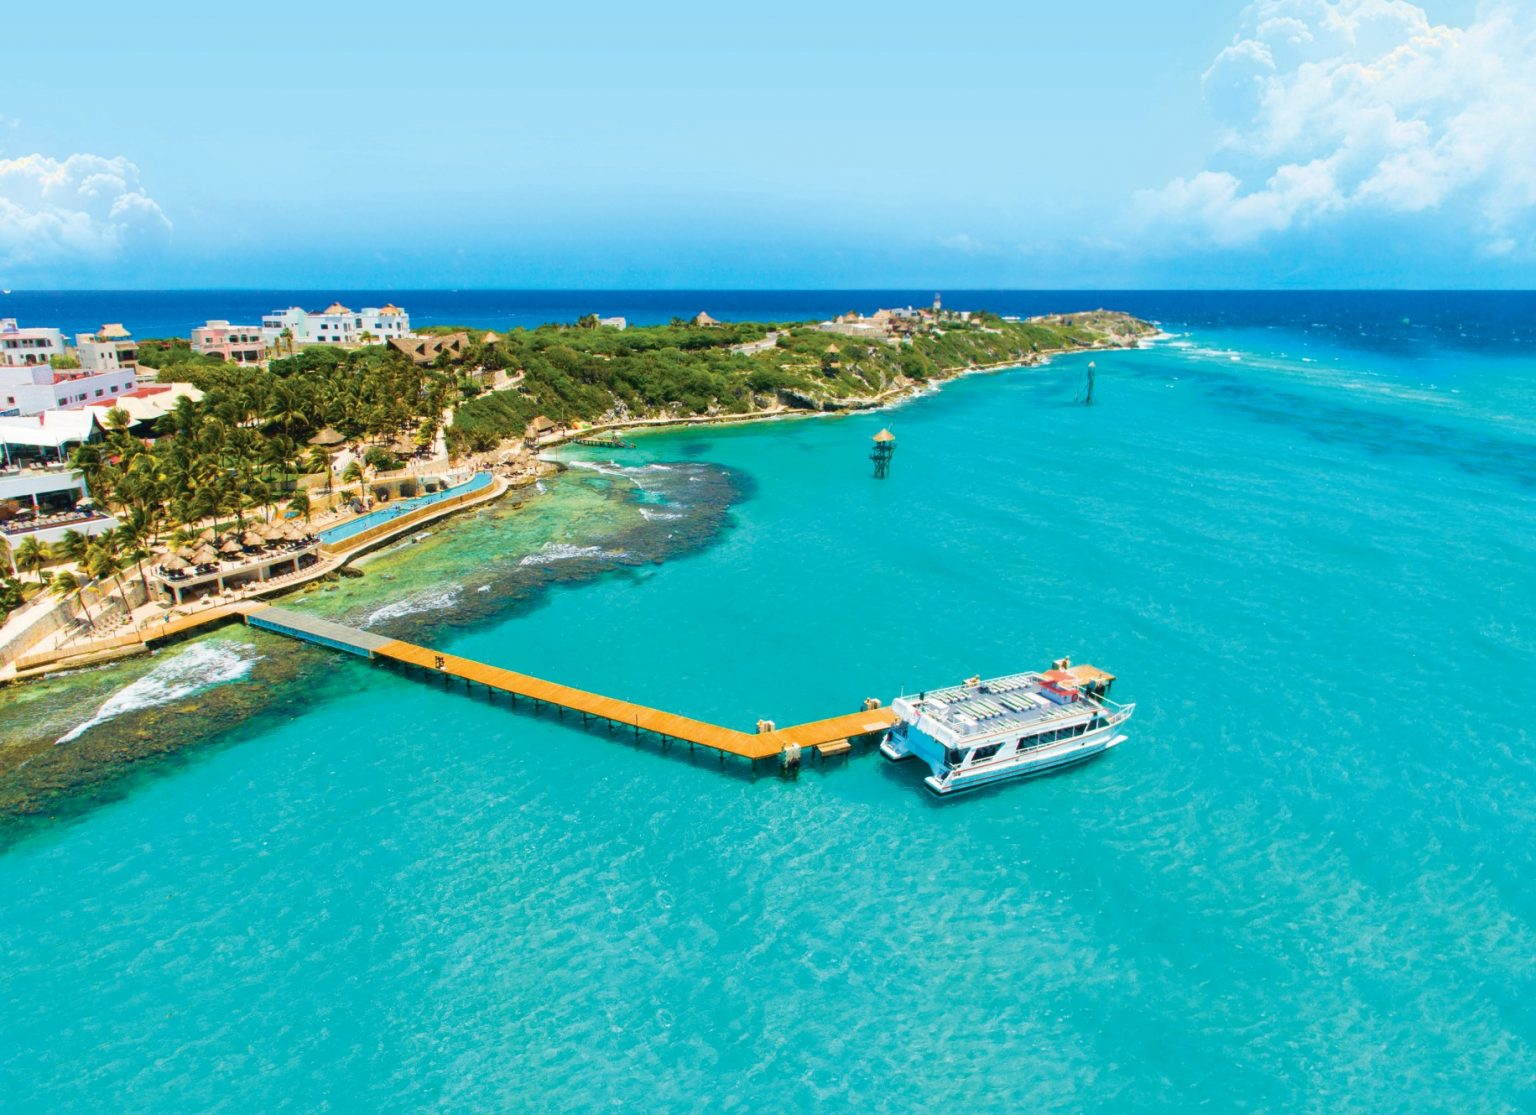 Is it Worth to Swim With Dolphins on Isla Mujeres and Visit Garrafon Park on the Same Day?